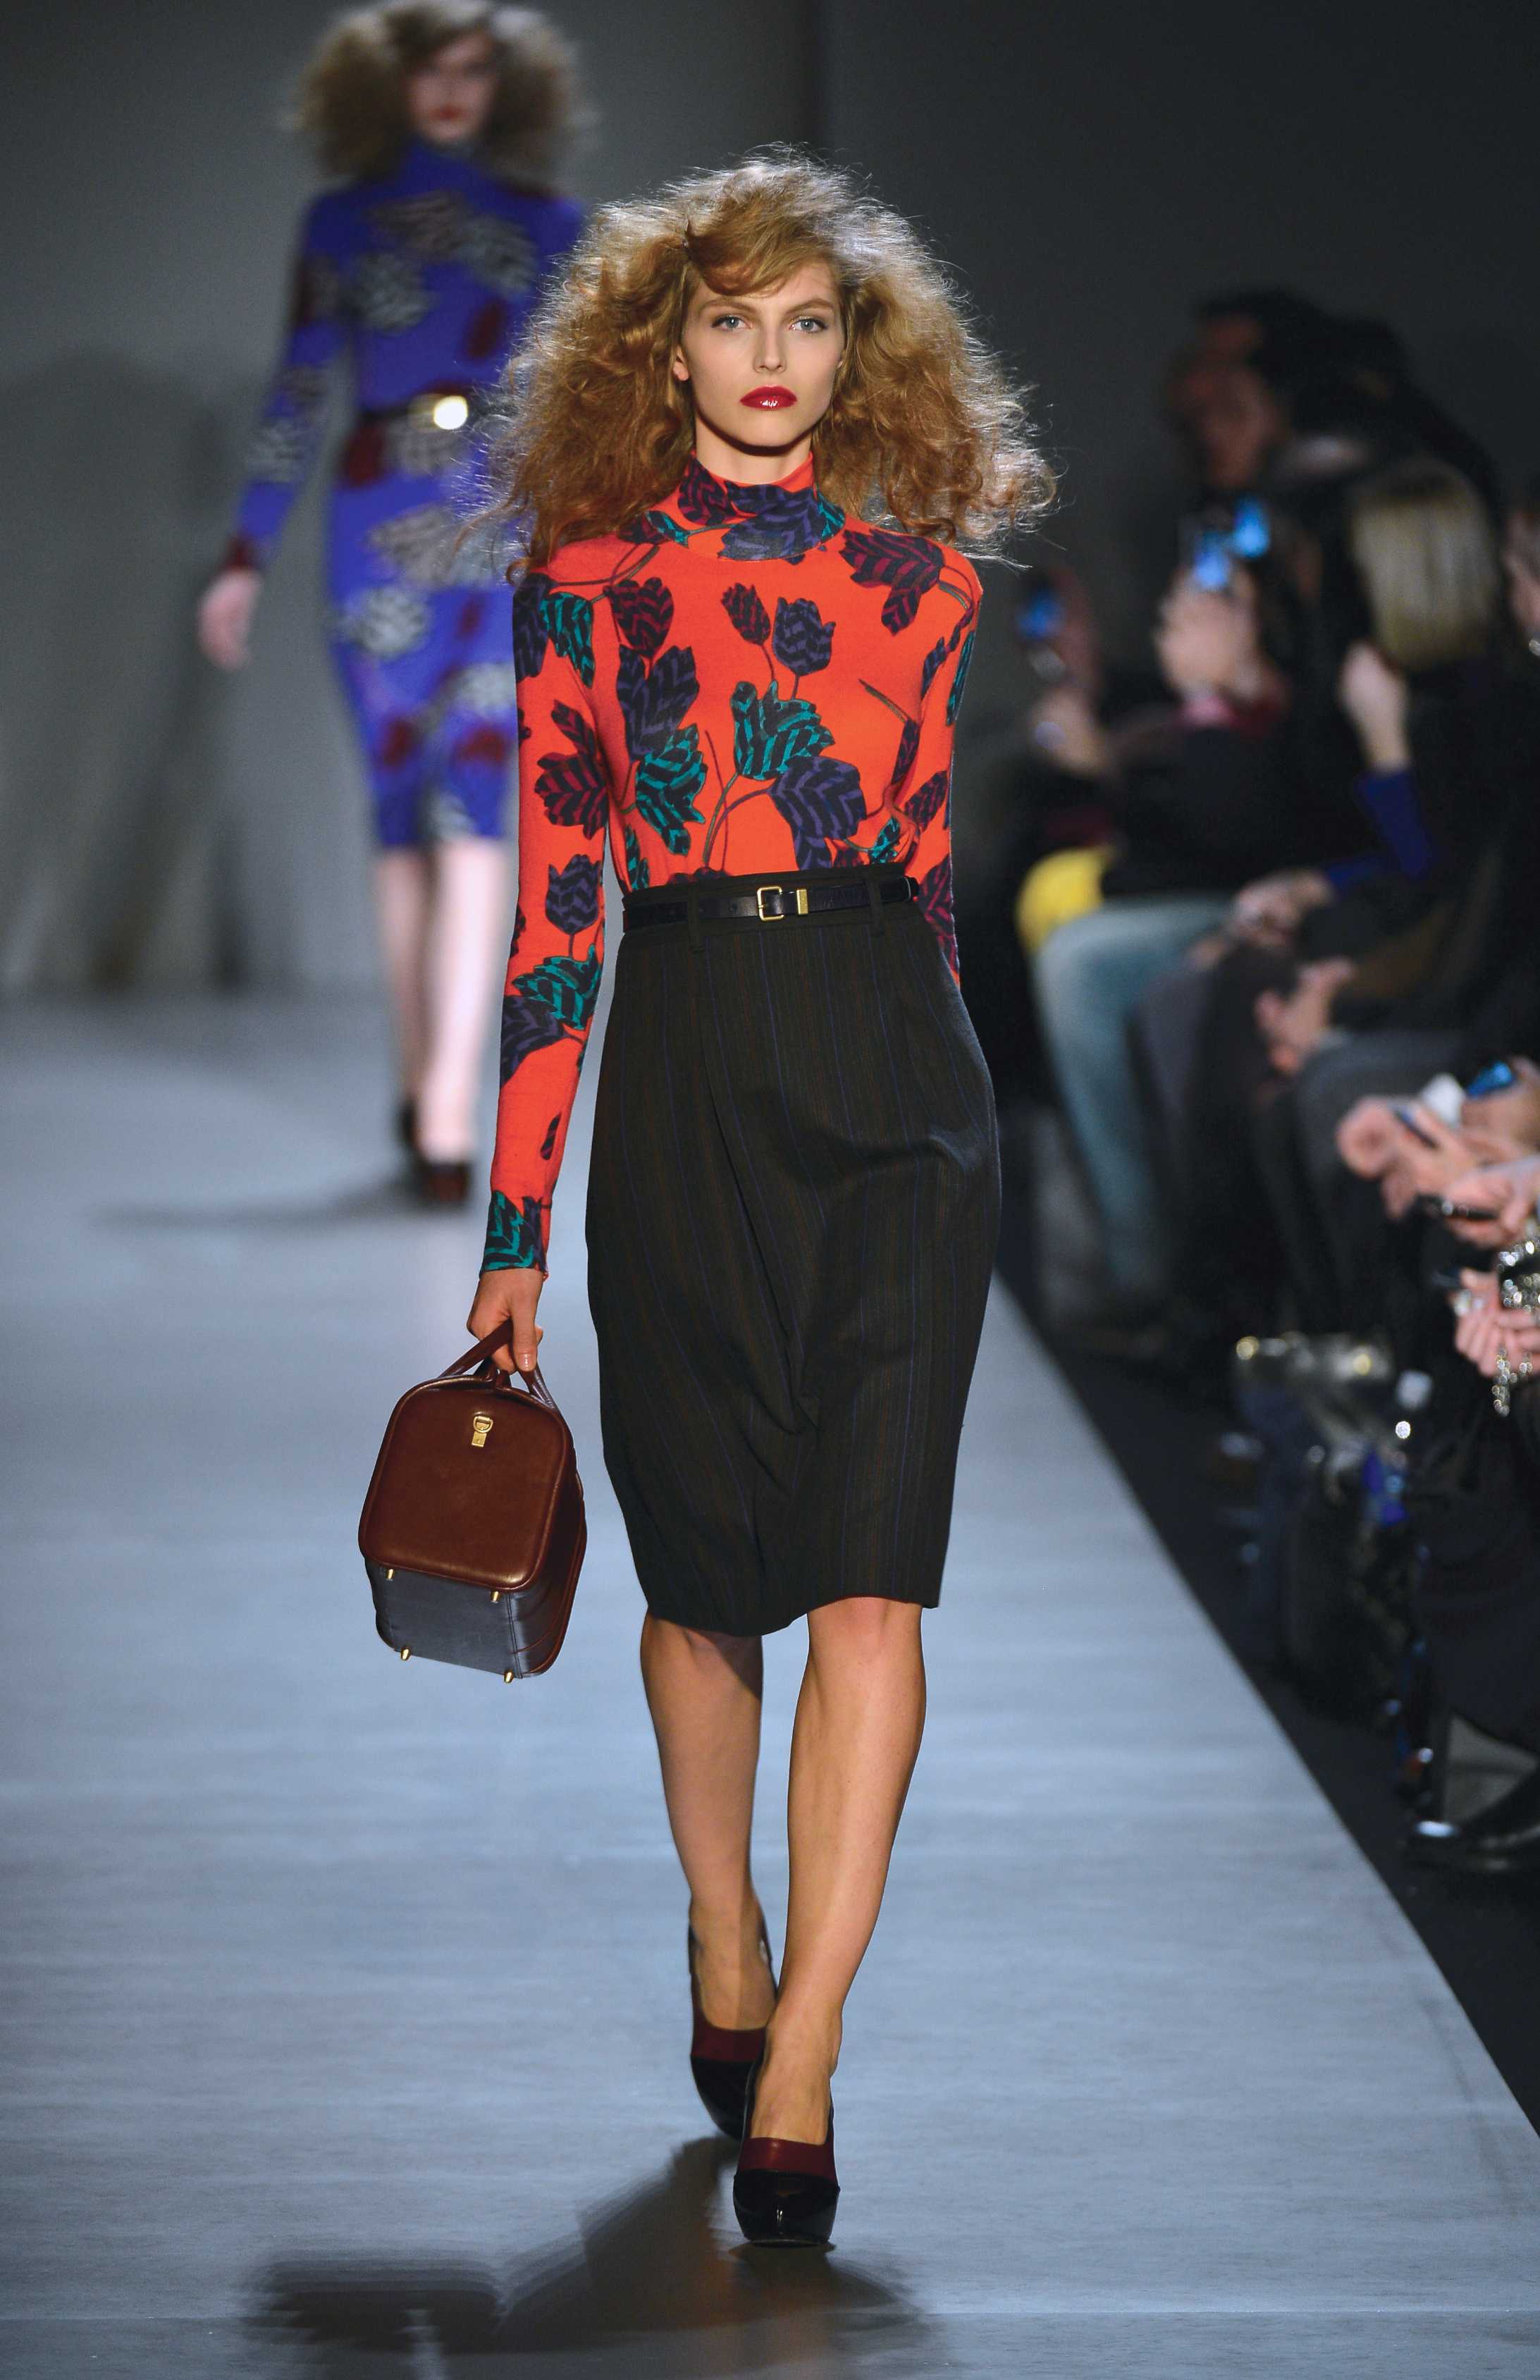 Marc by Marc Jacobs was ALL about the knee length pencil skirt/Image: Frazer Harrison Getty North America